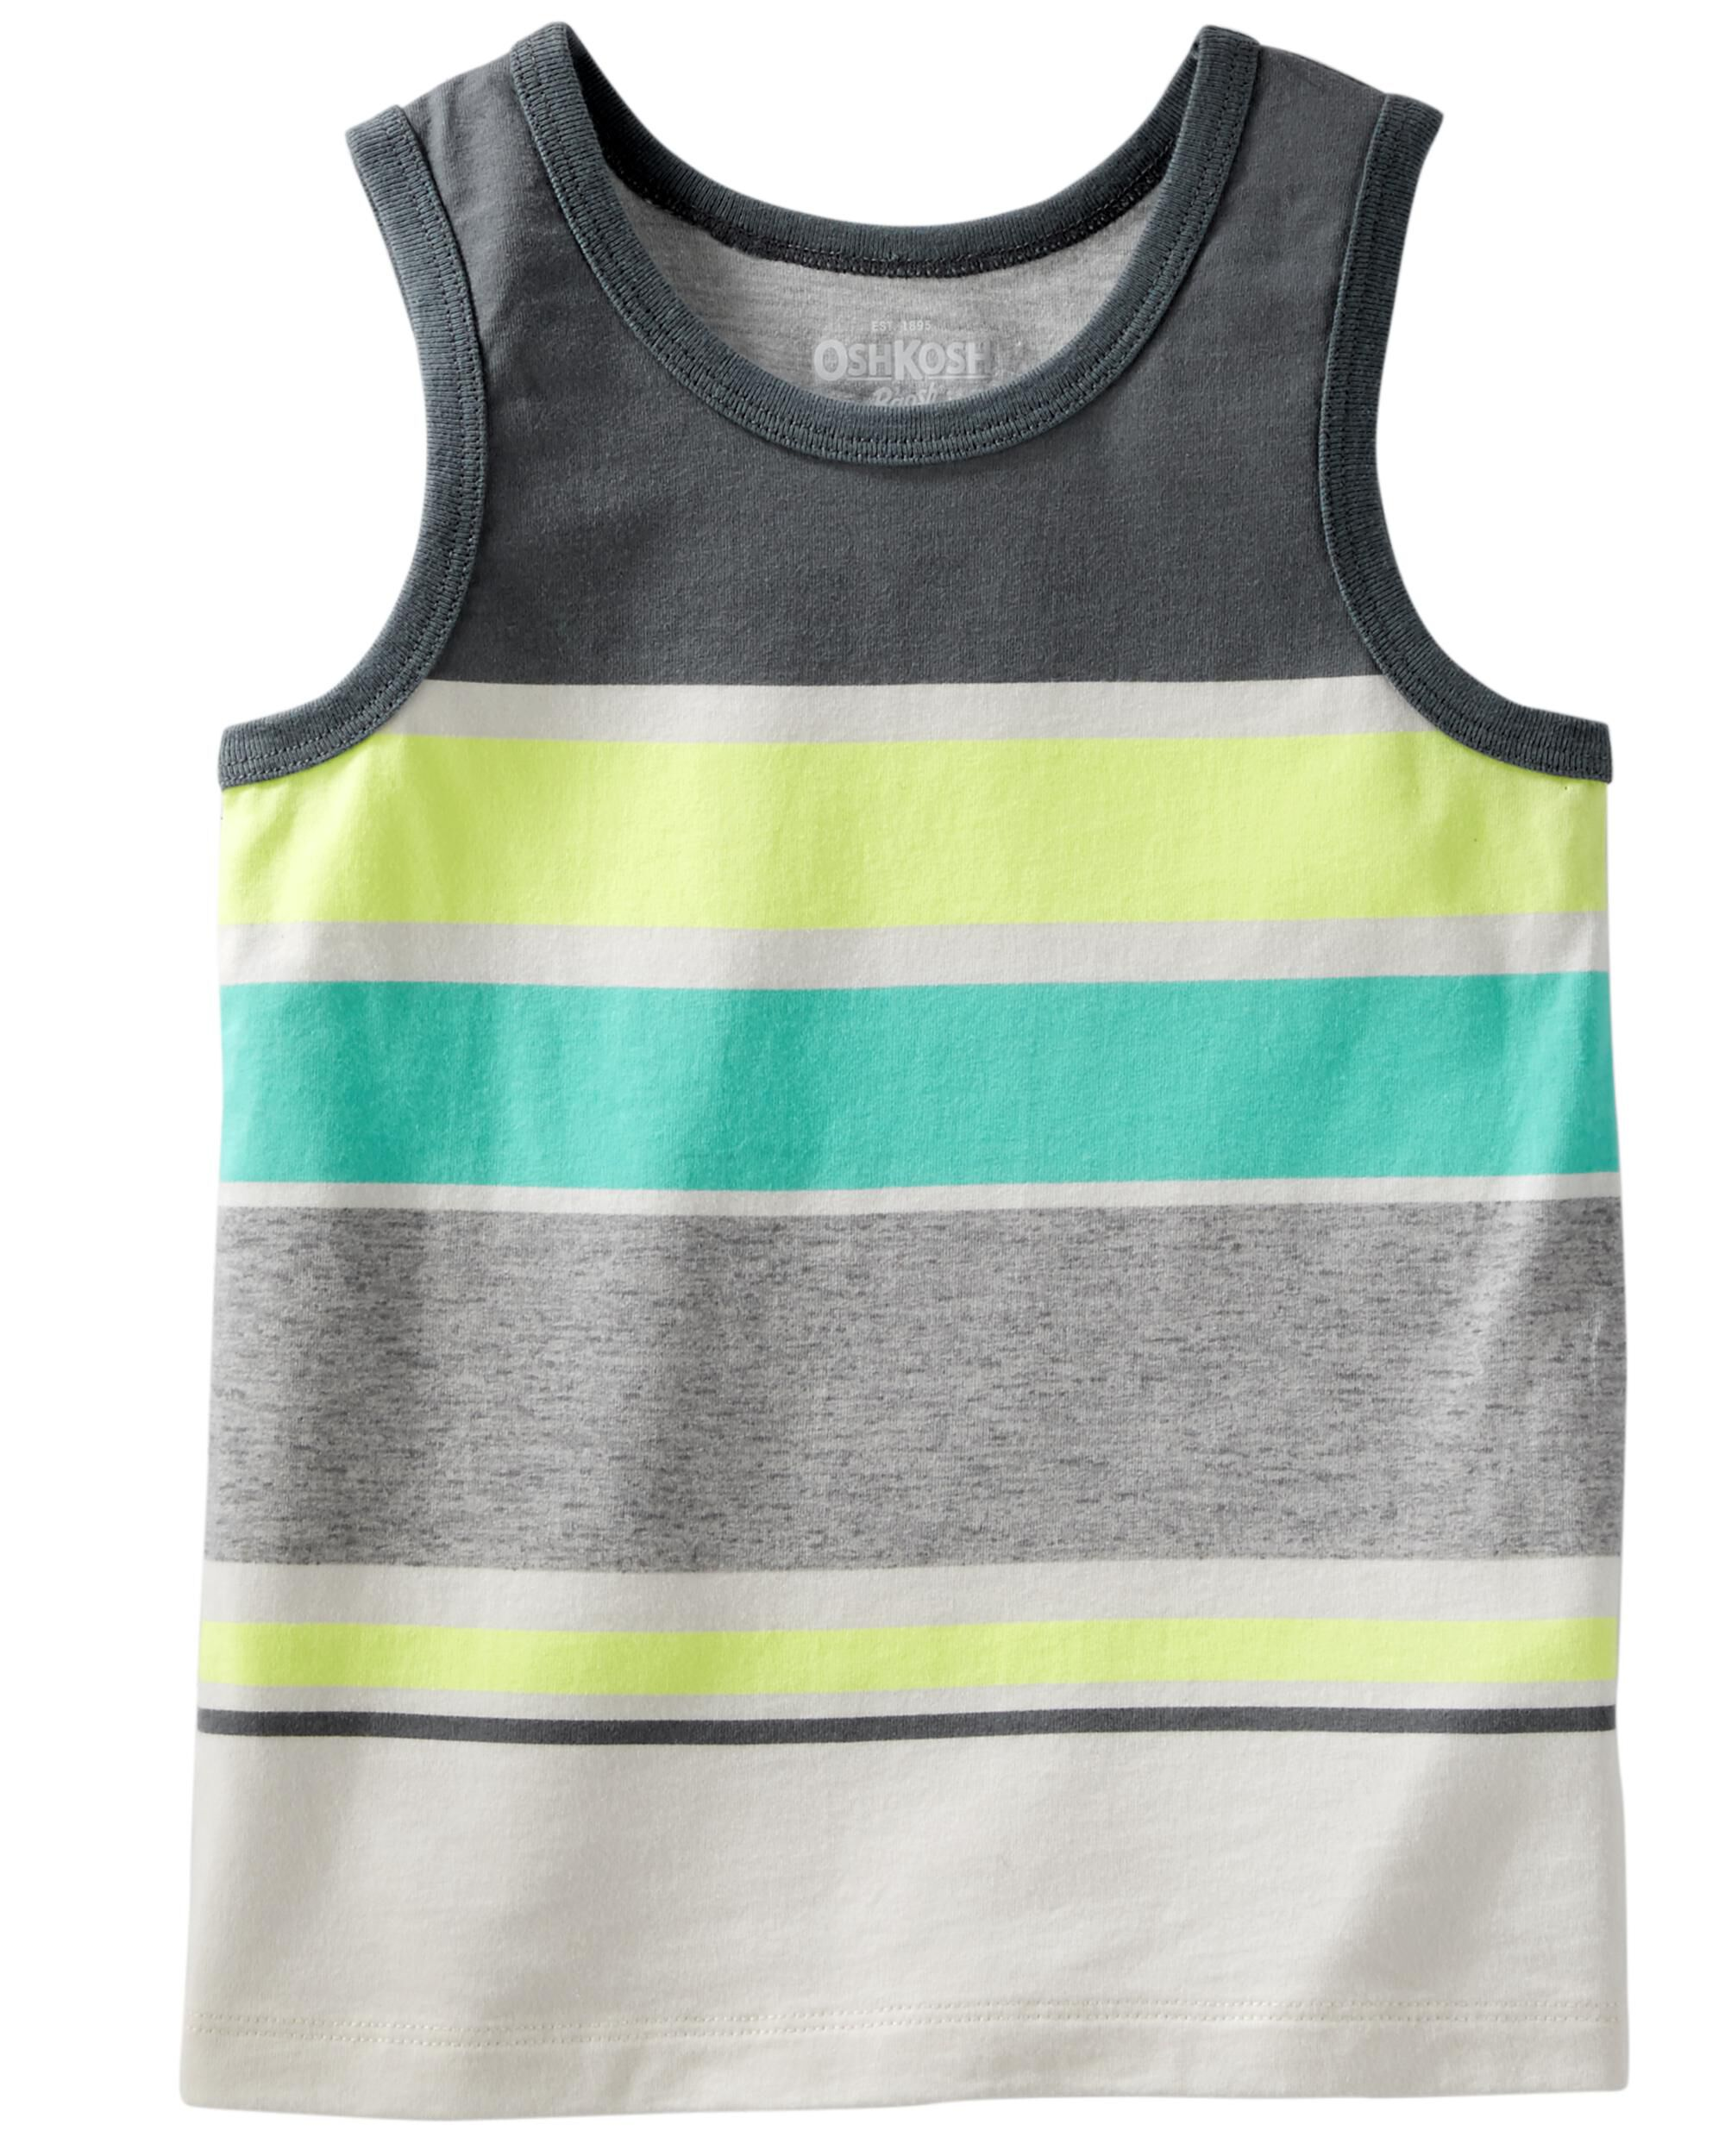 OshKosh BGosh Baby Boys//Toddler Mix Kit Striped Tank